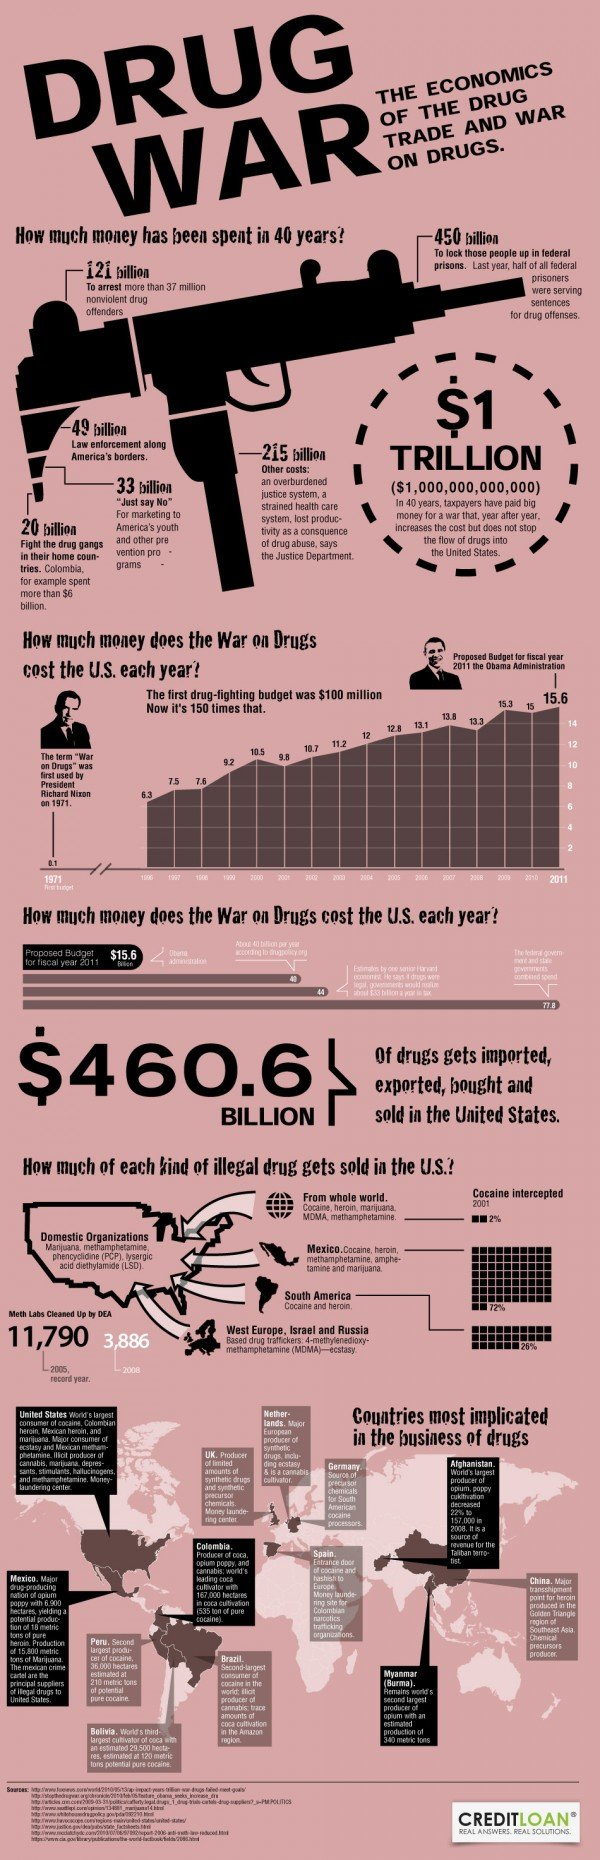 drug wars the economics of the drag trade and war on drugs #infographic